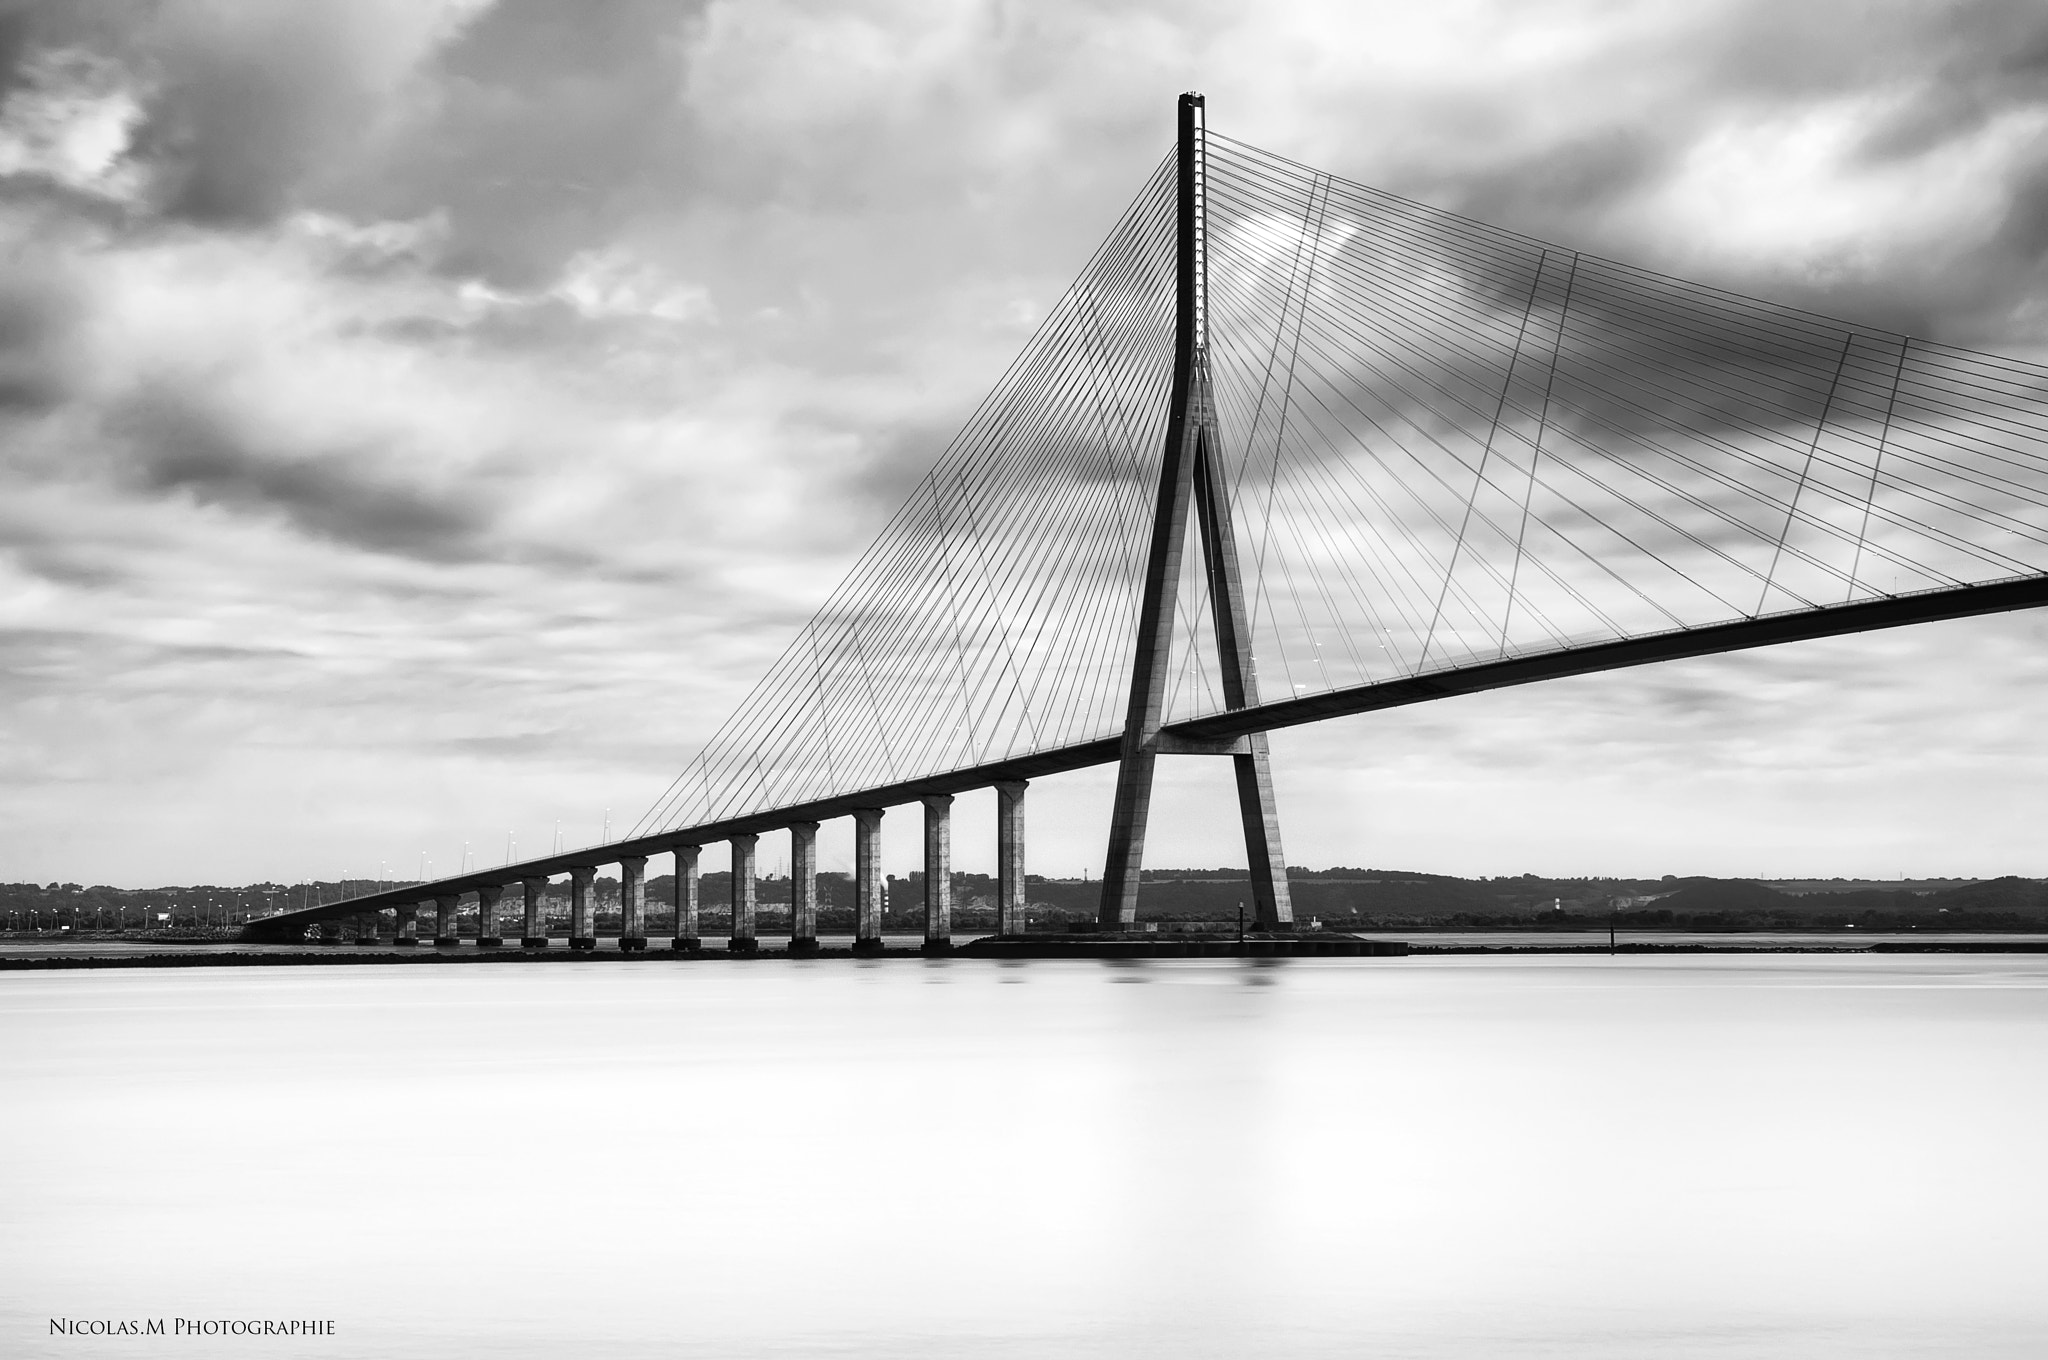 Photograph Pont de Normandie by Nicolas.M  photographie on 500px